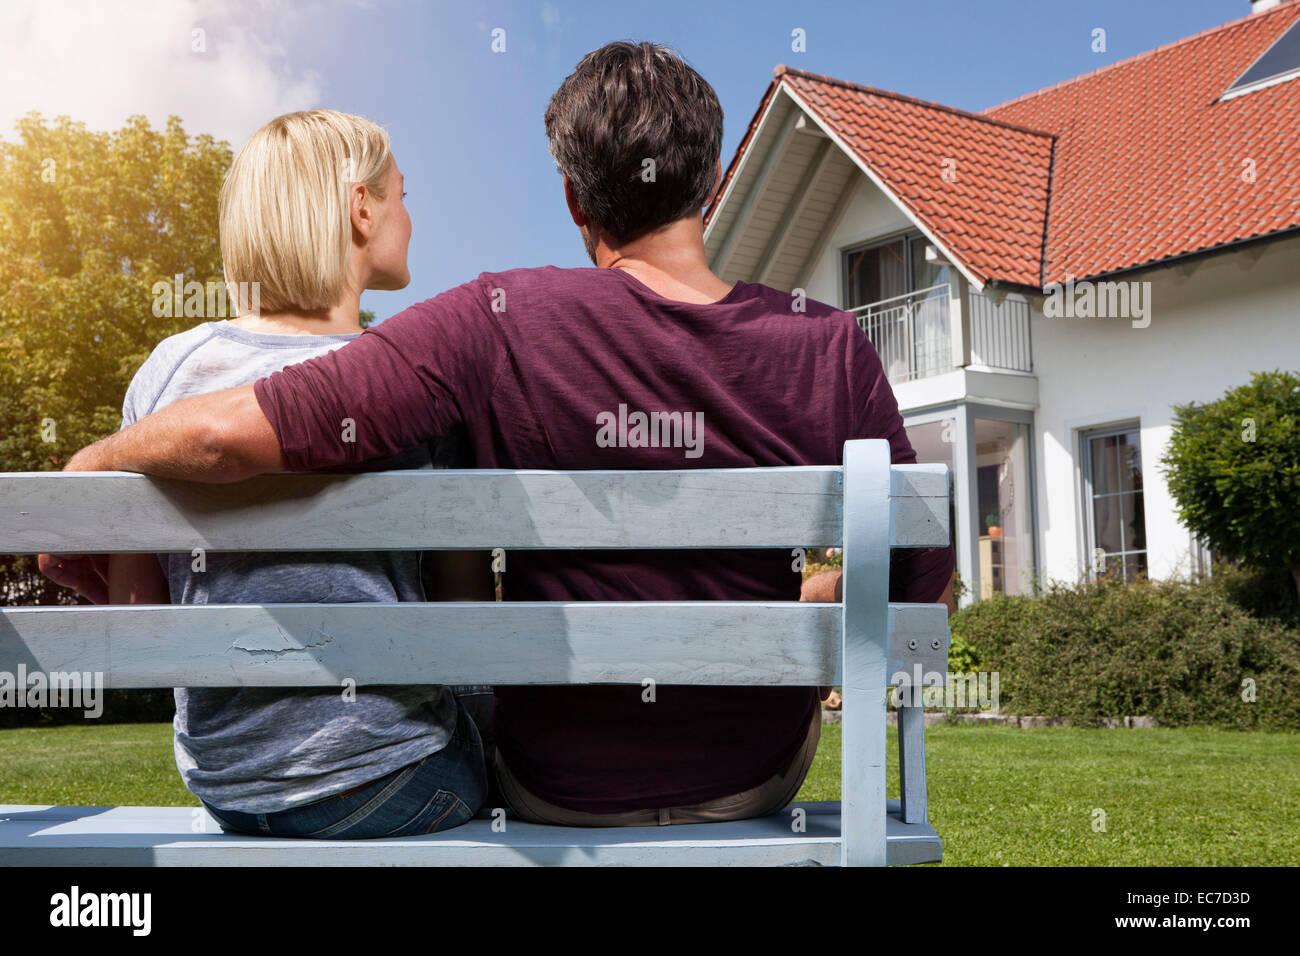 Rear view of mature couple sitting on bench in garden - Stock Image